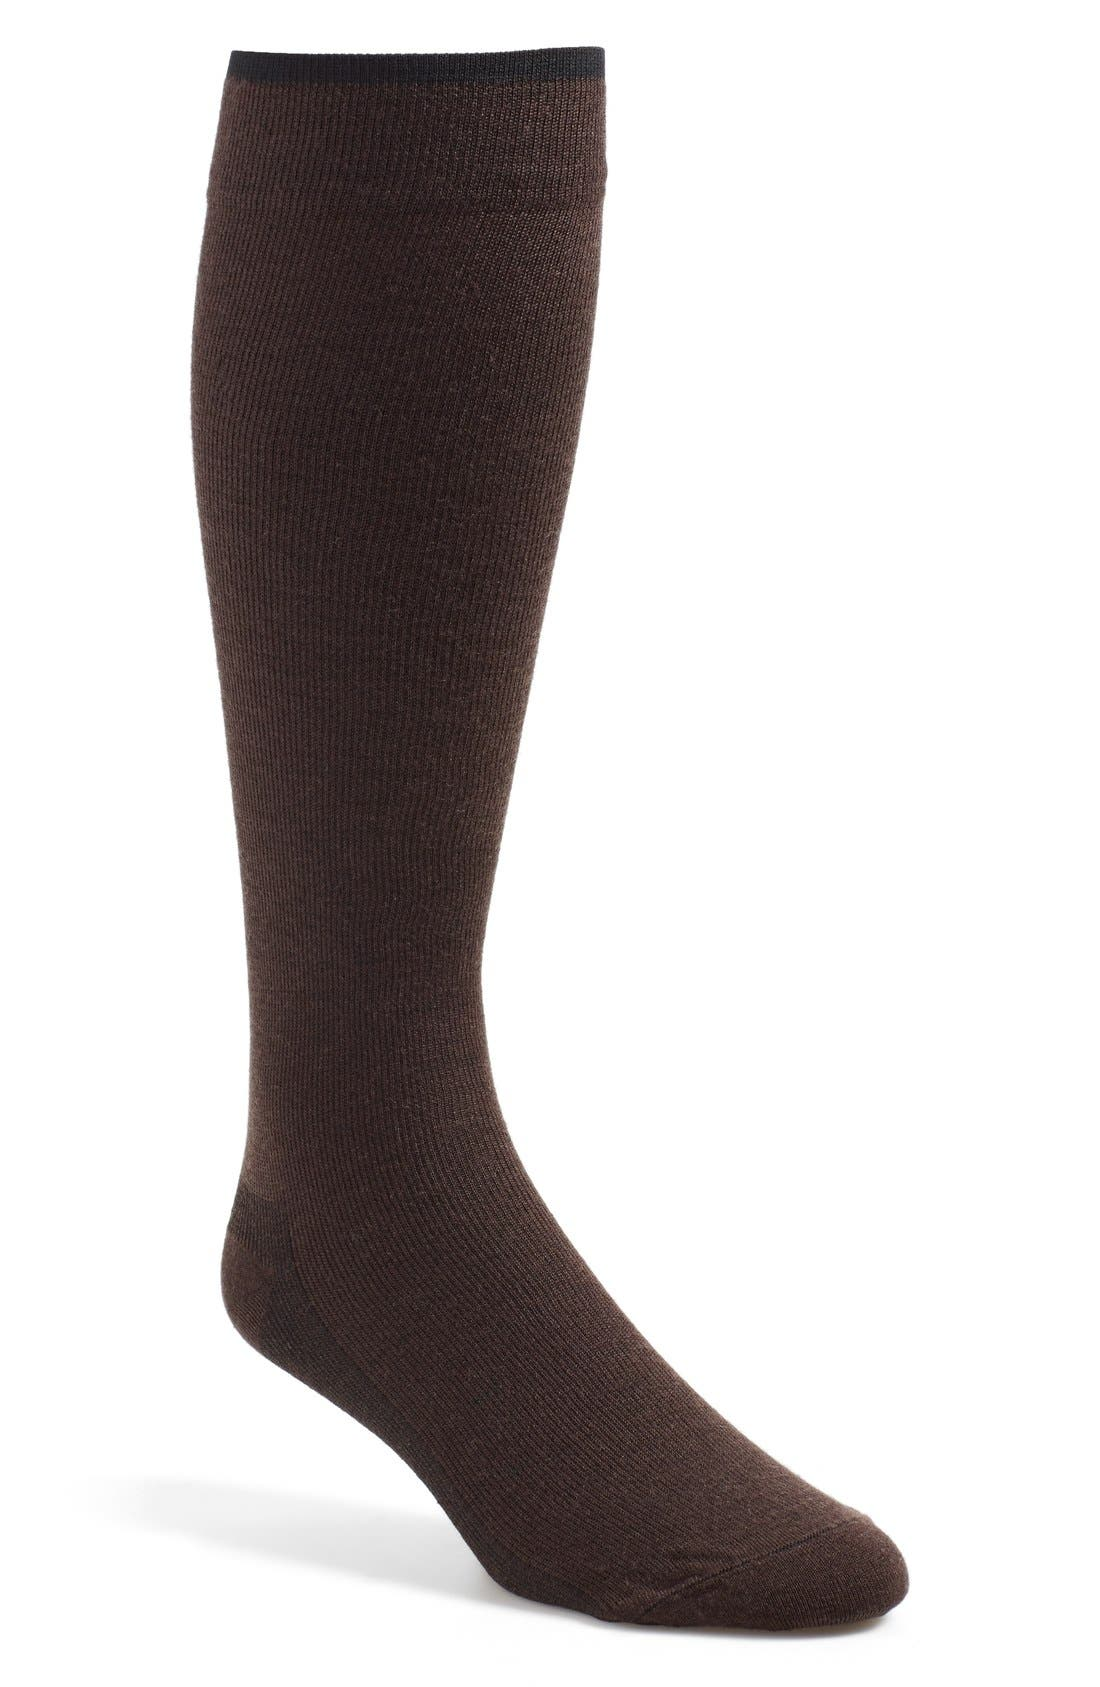 'Venturist' Over the Calf Socks,                         Main,                         color, Brown